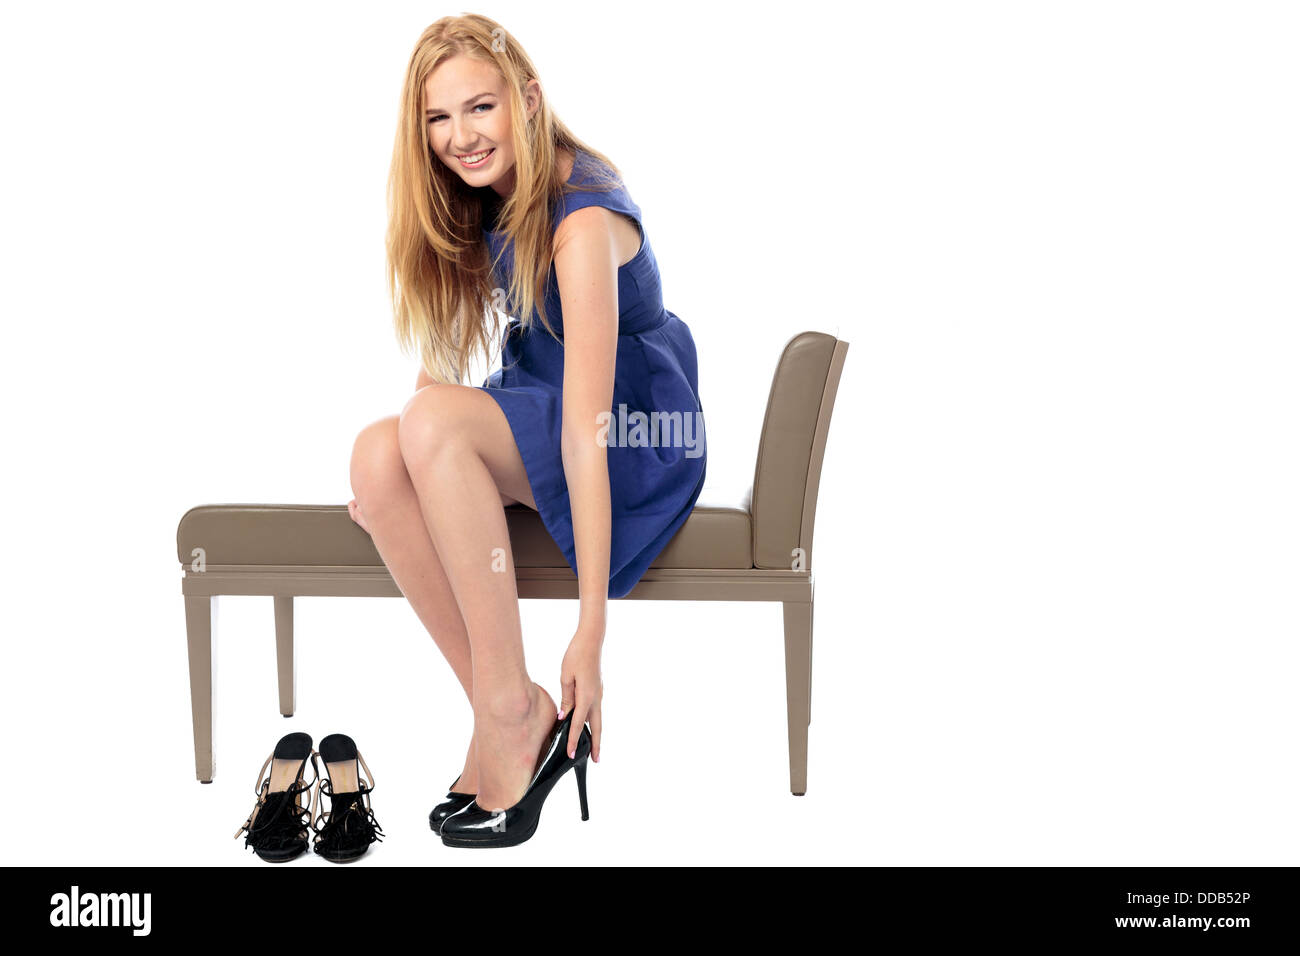 Smiling stylish young woman sitting on a seat putting on her elegant high heeled shoes, isolated on white - Stock Image